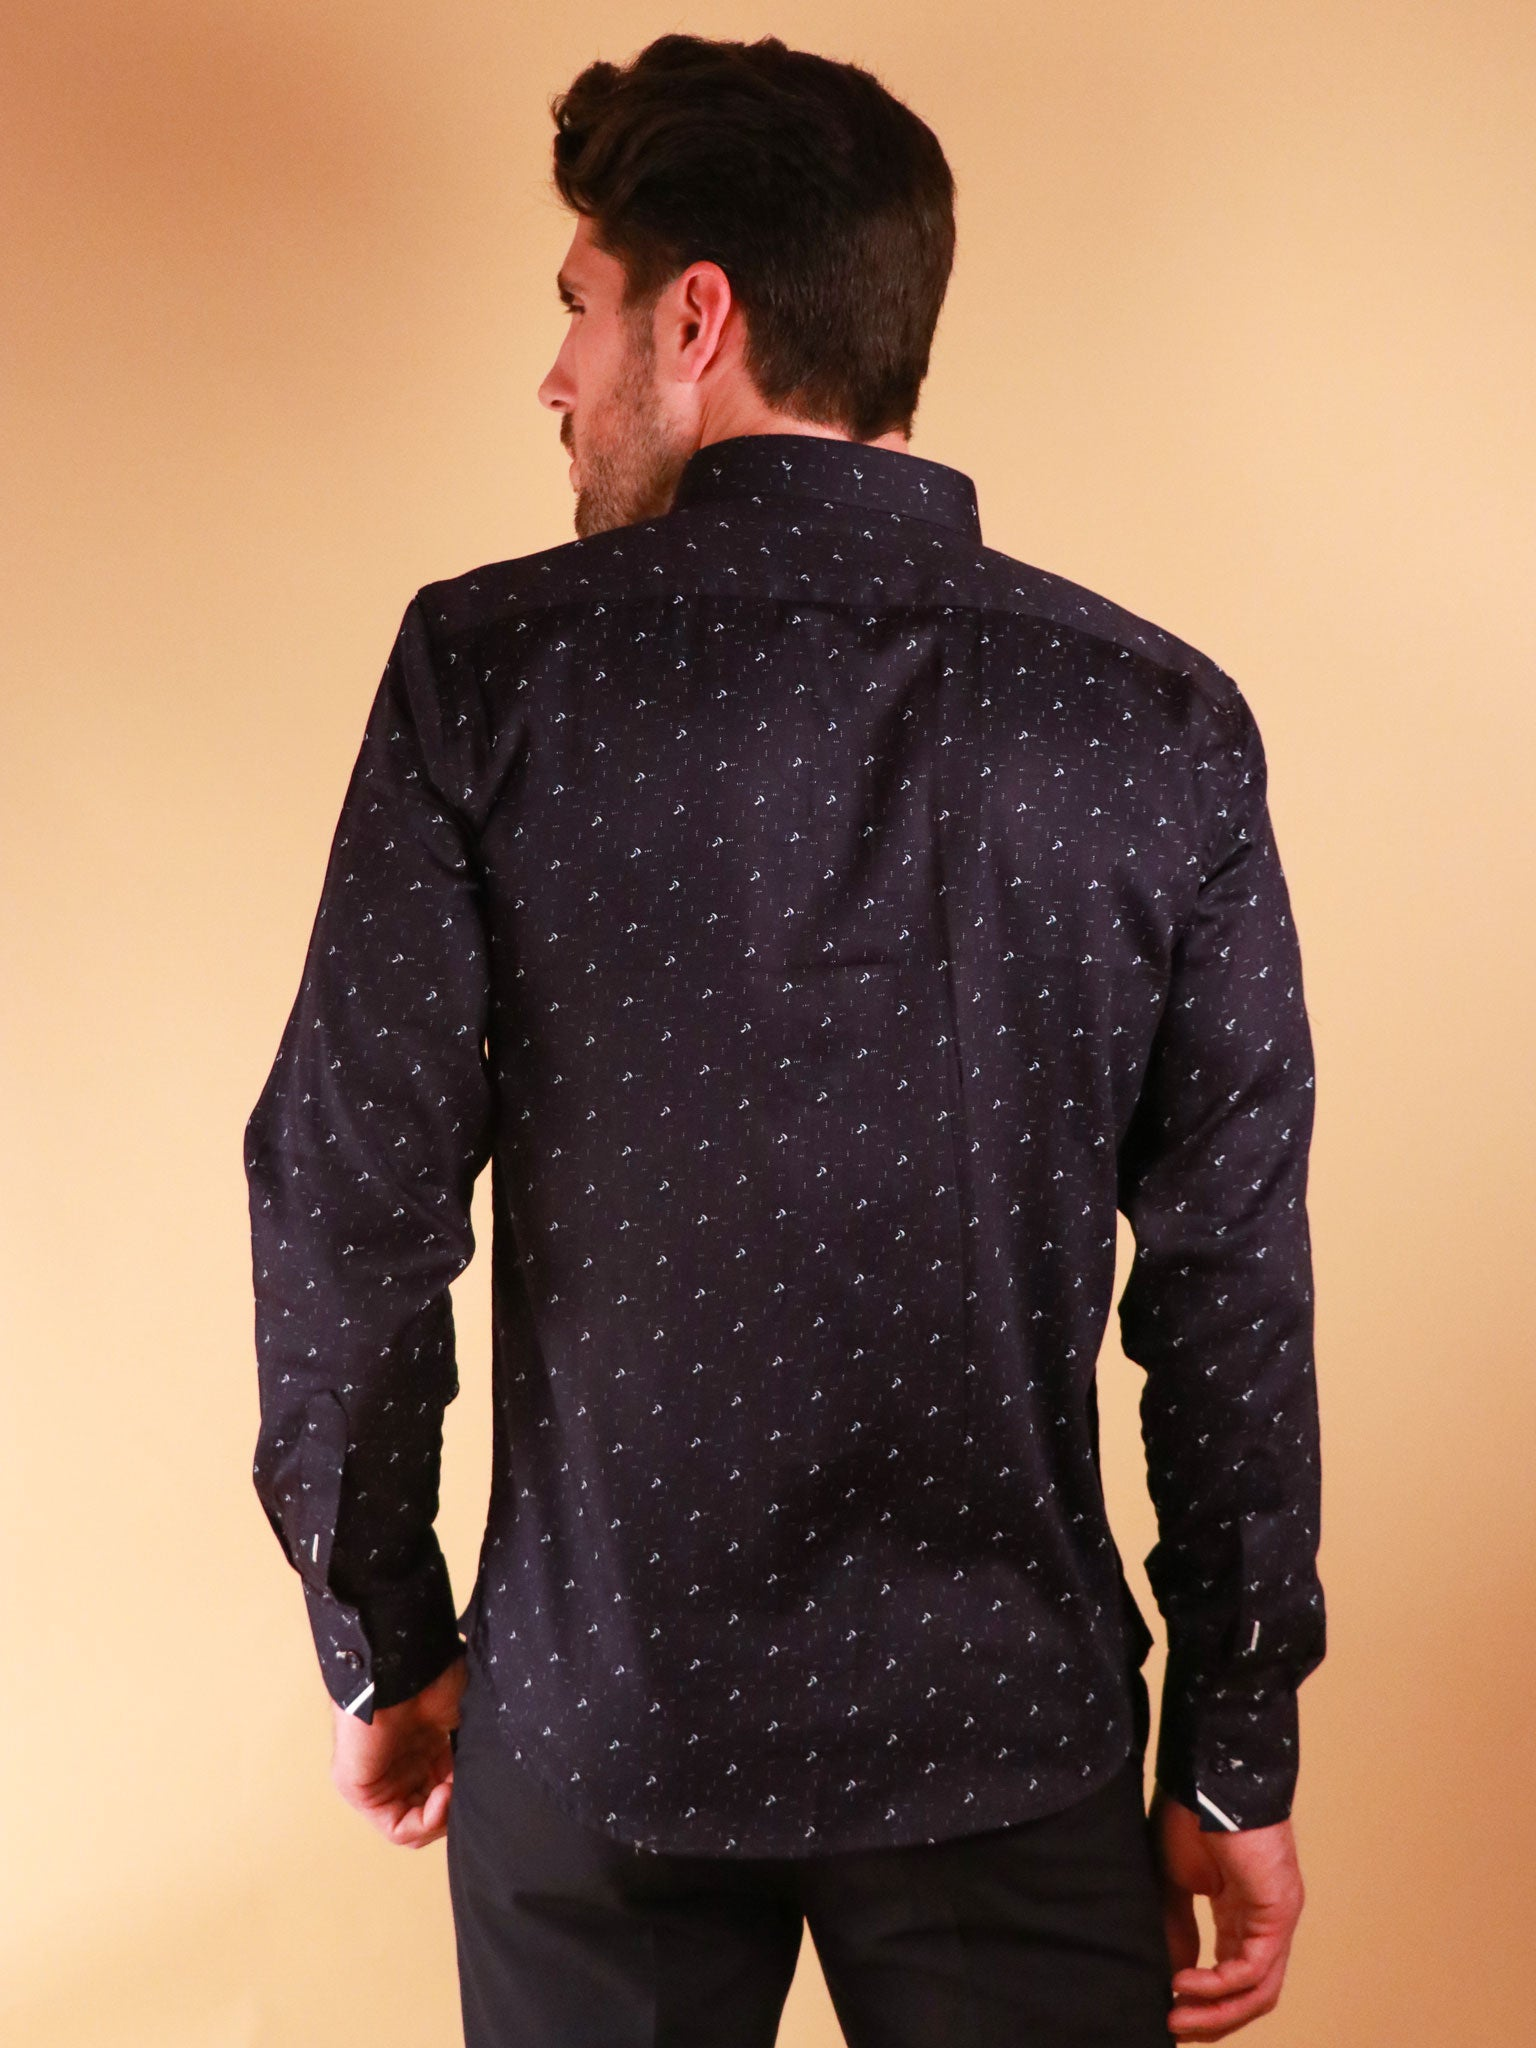 dark crossway shirt model image from back